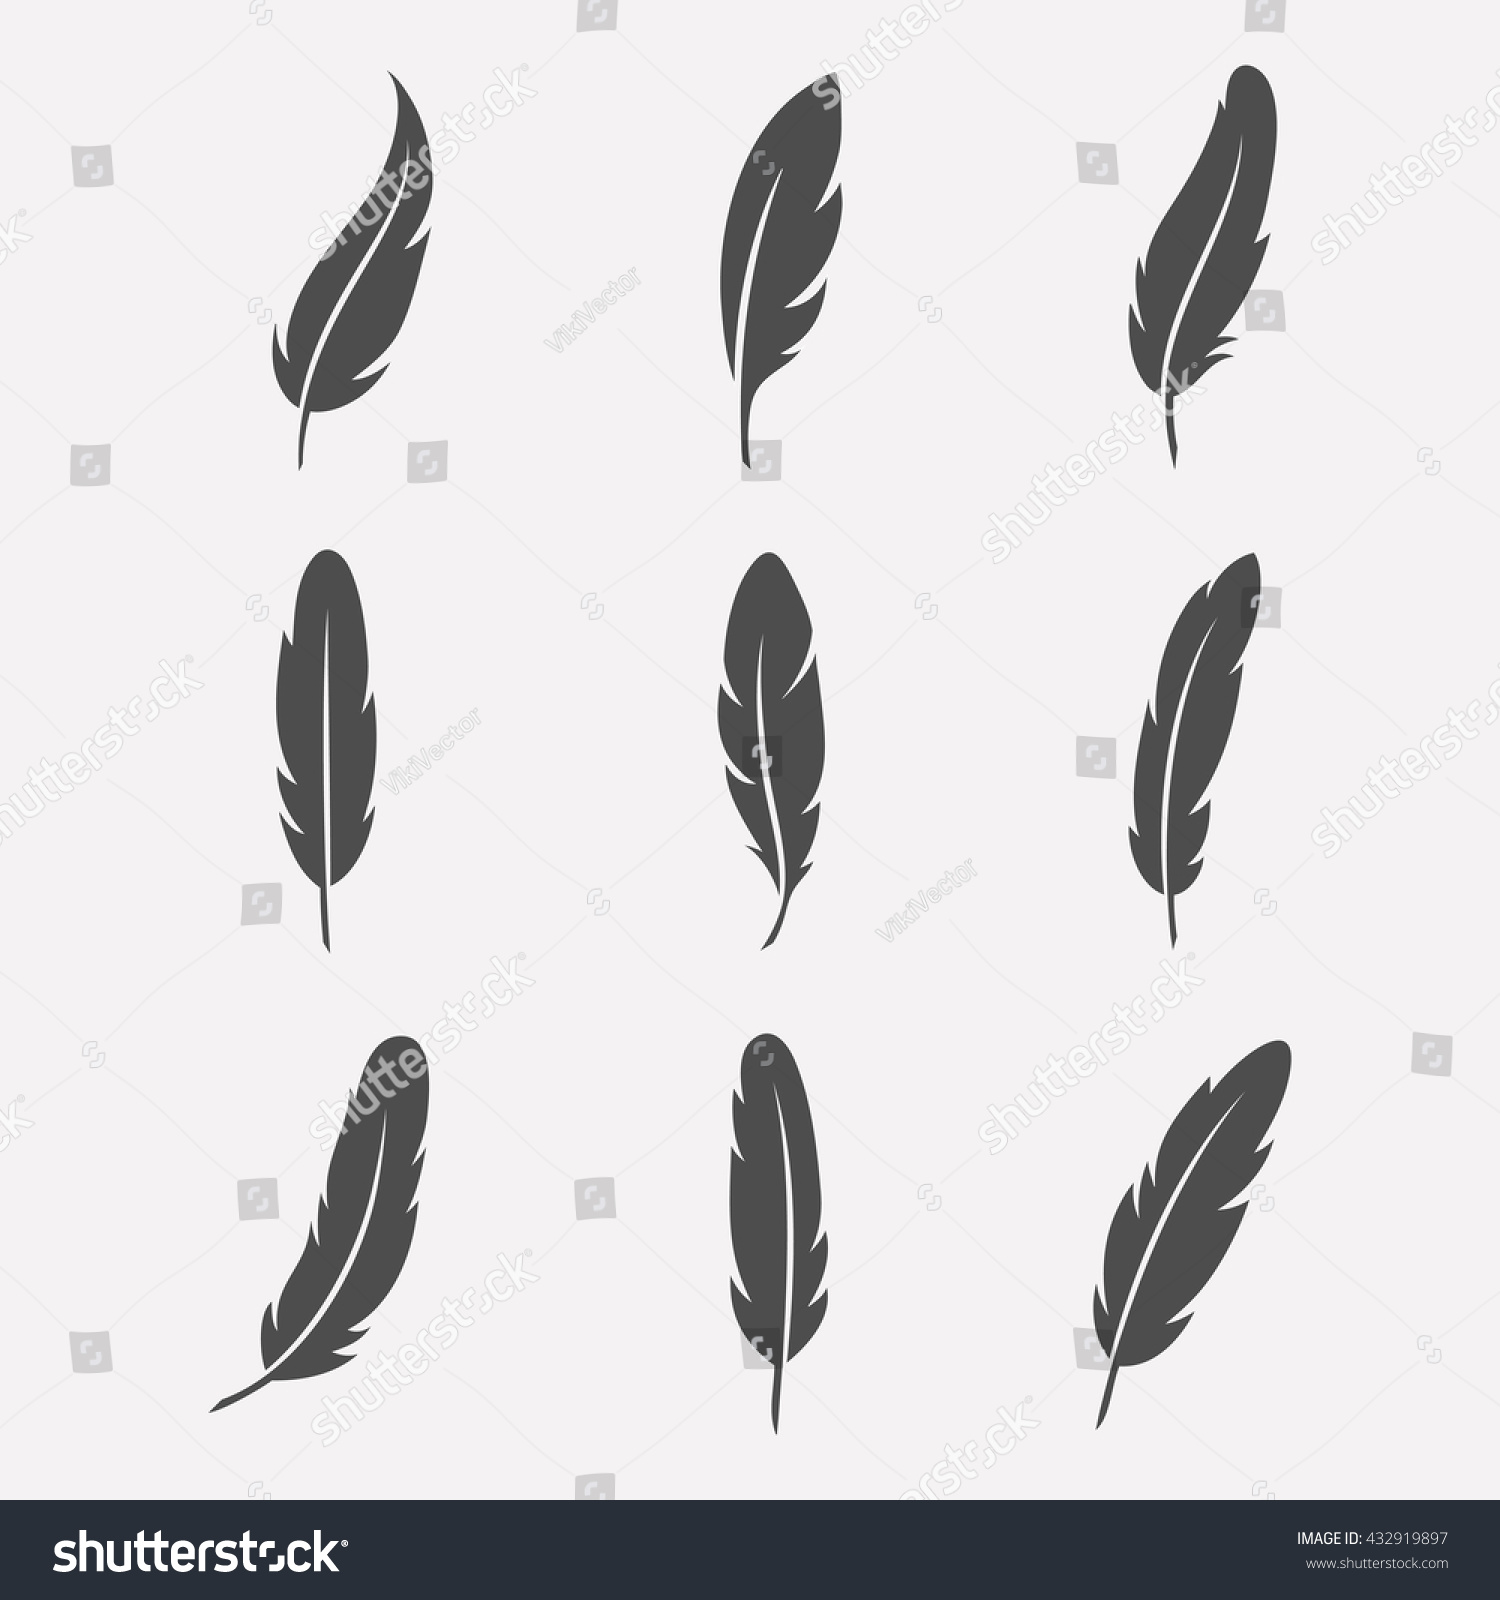 Feathers vector set in a flat style. Icons feathers isolated on a light background.